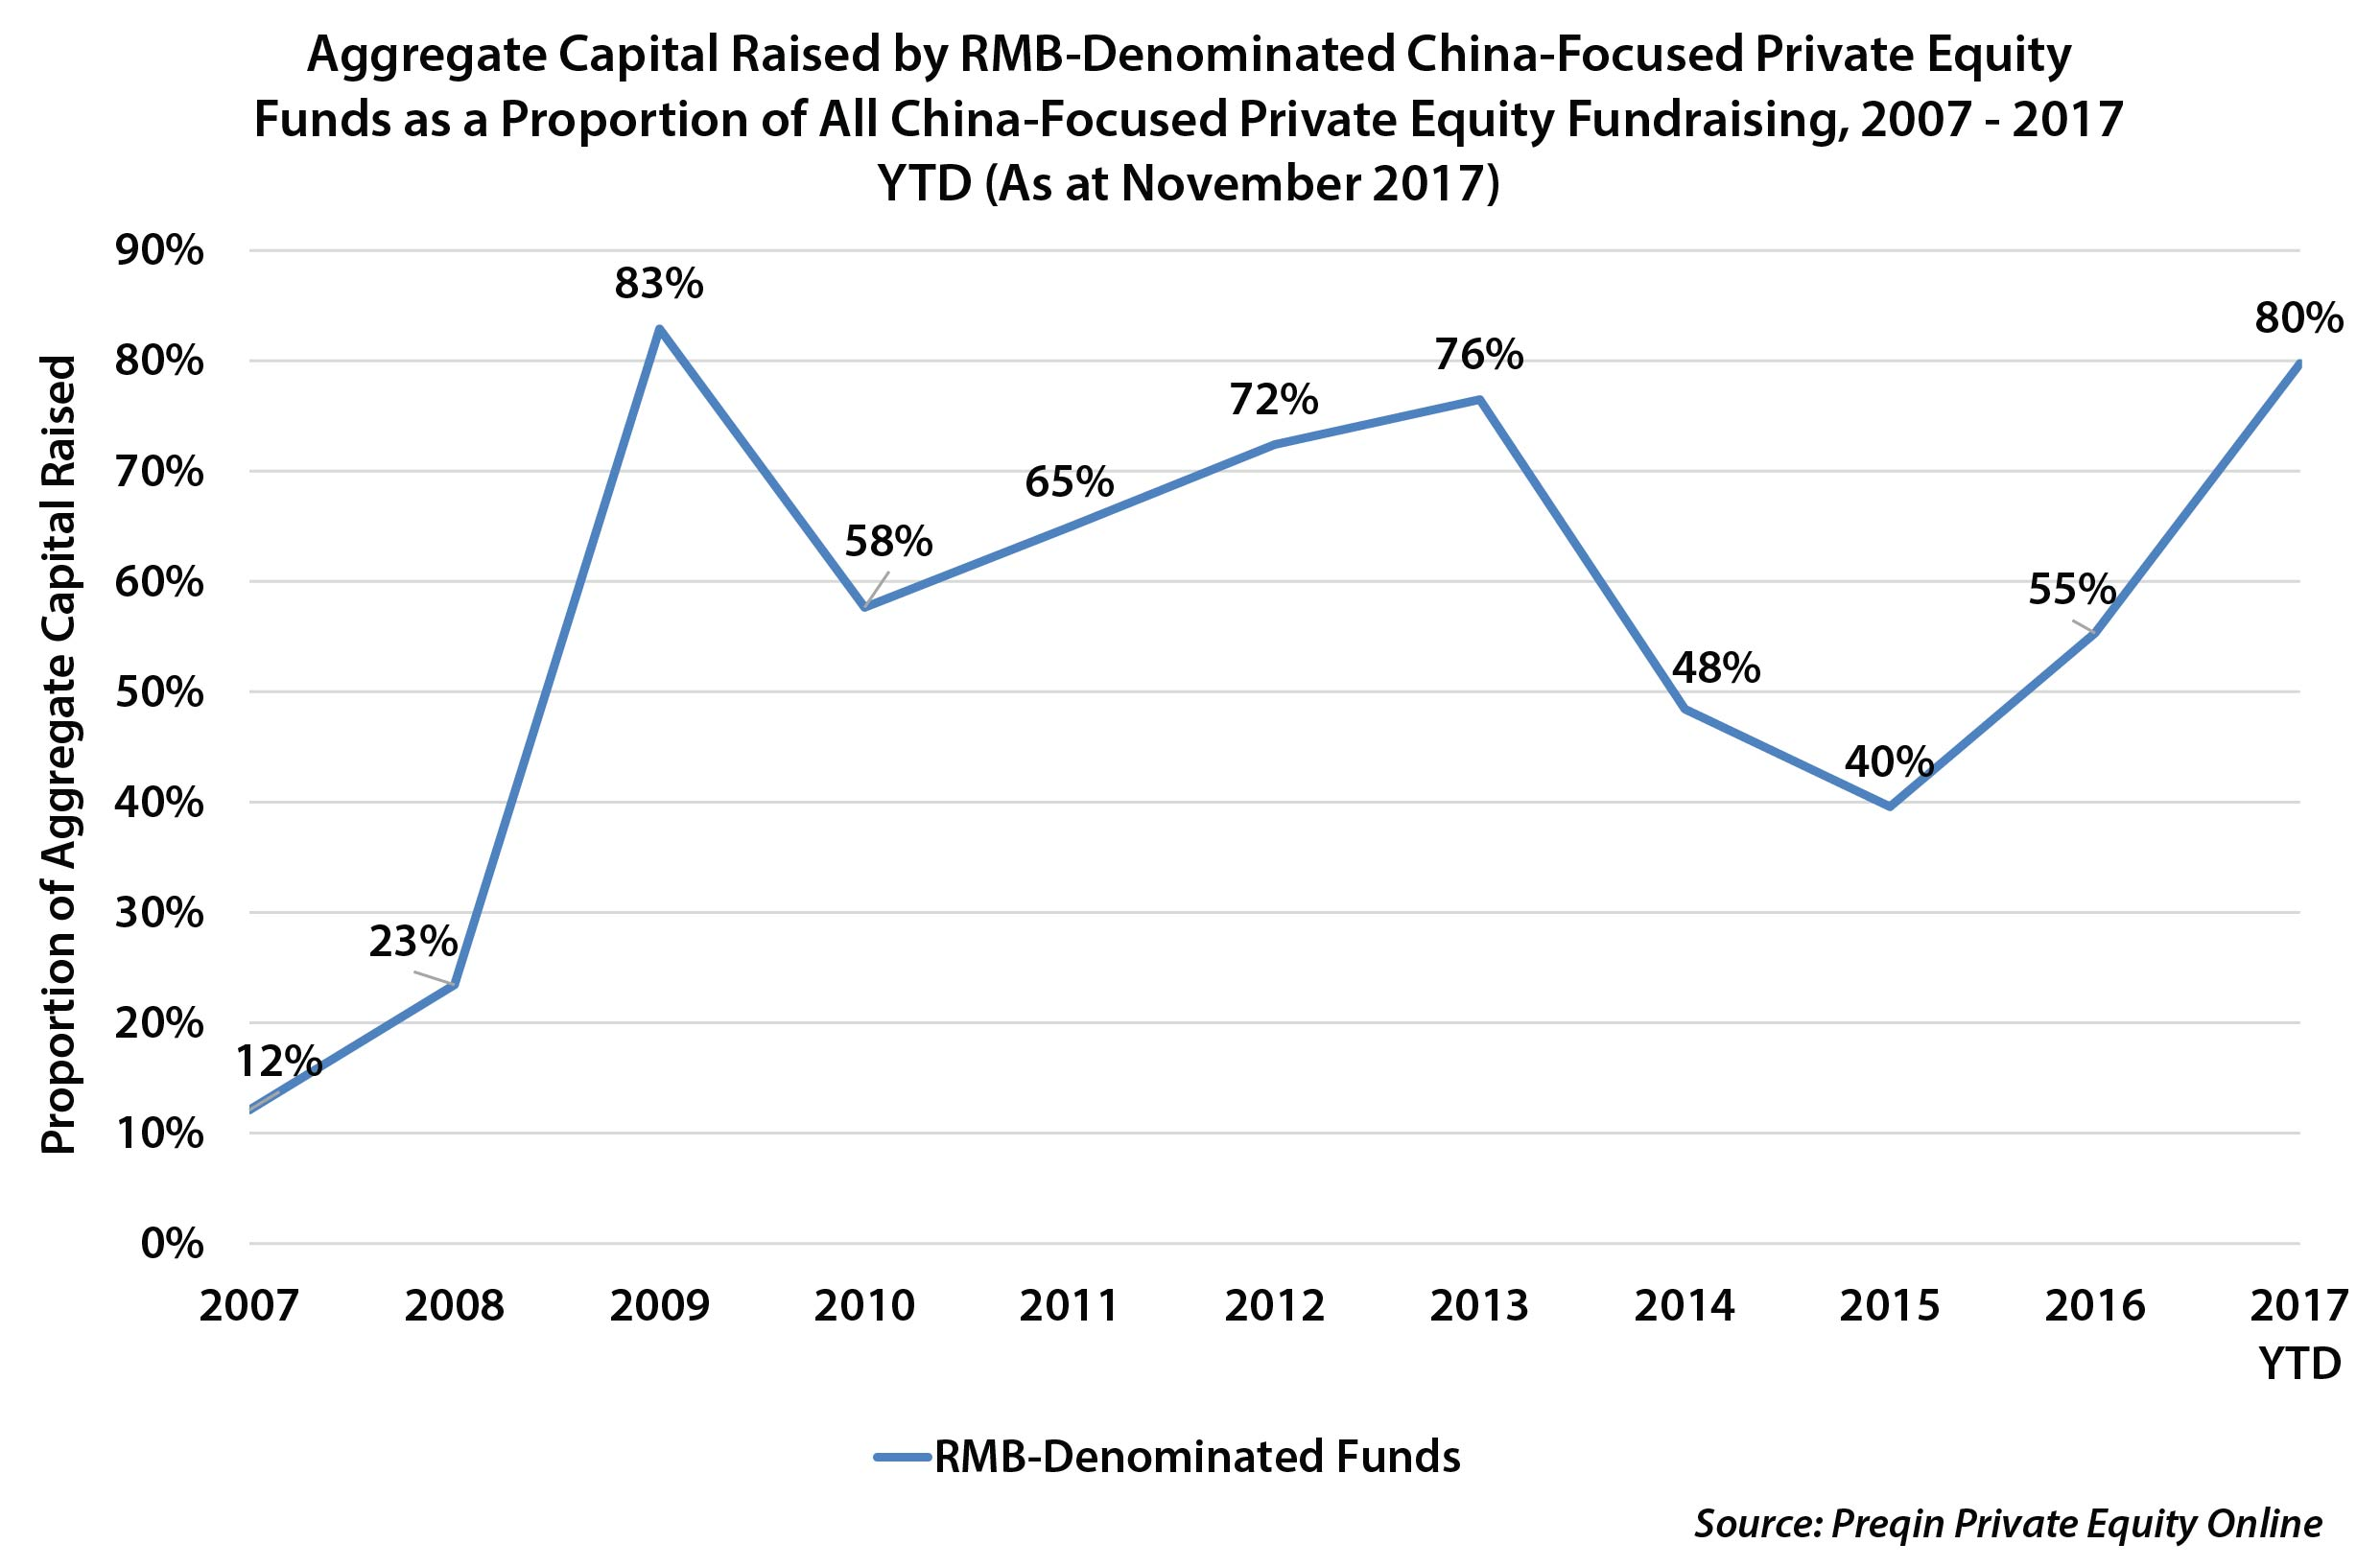 The Dominance of RMB-Denominated Funds in China-Focused Private